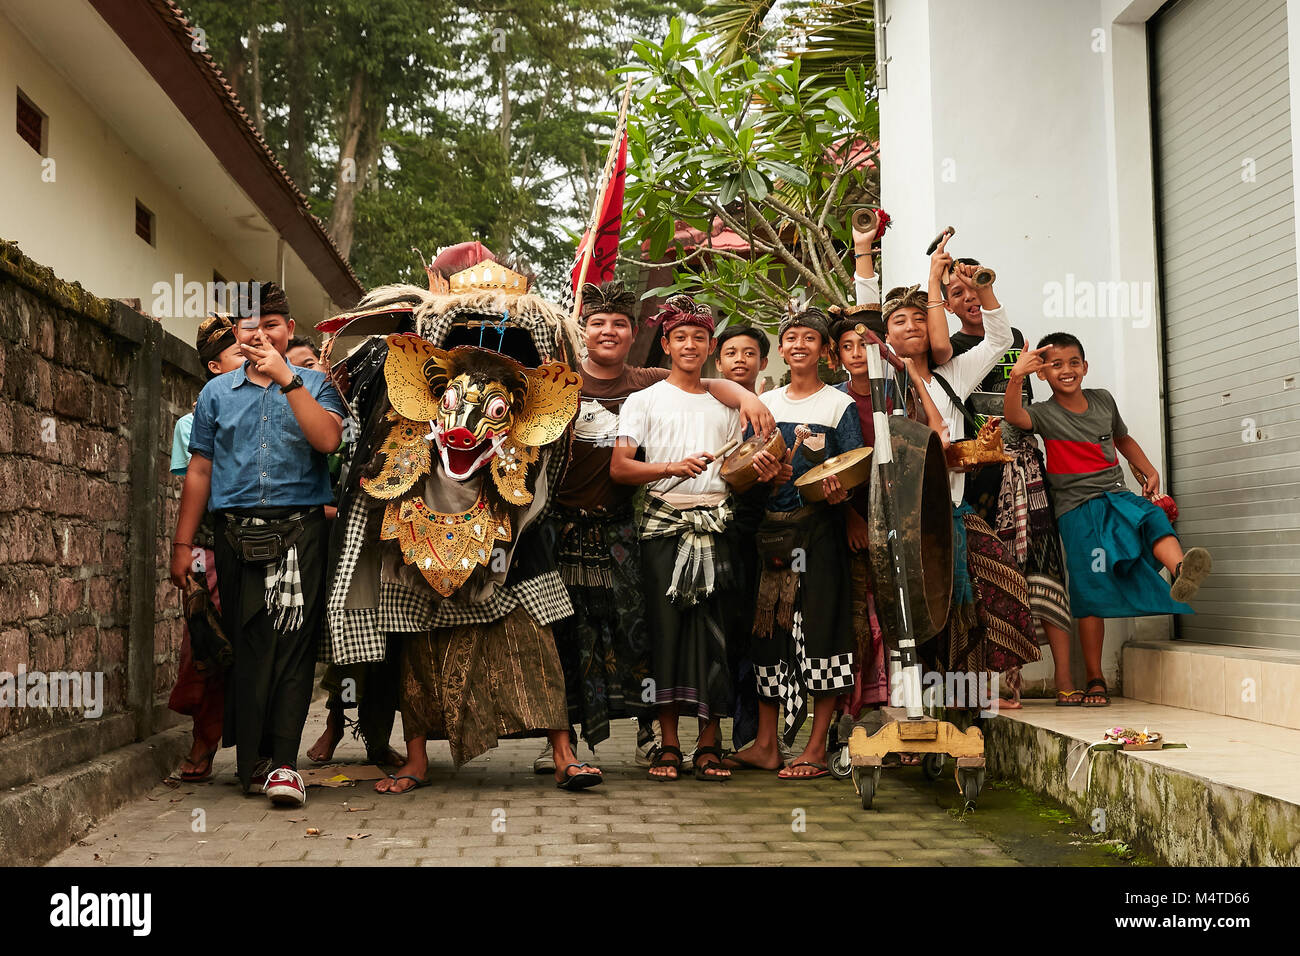 Local indonesian boys performing traditional lion dance with musical instruments on the street in Bali, Indonesia. Stock Photo